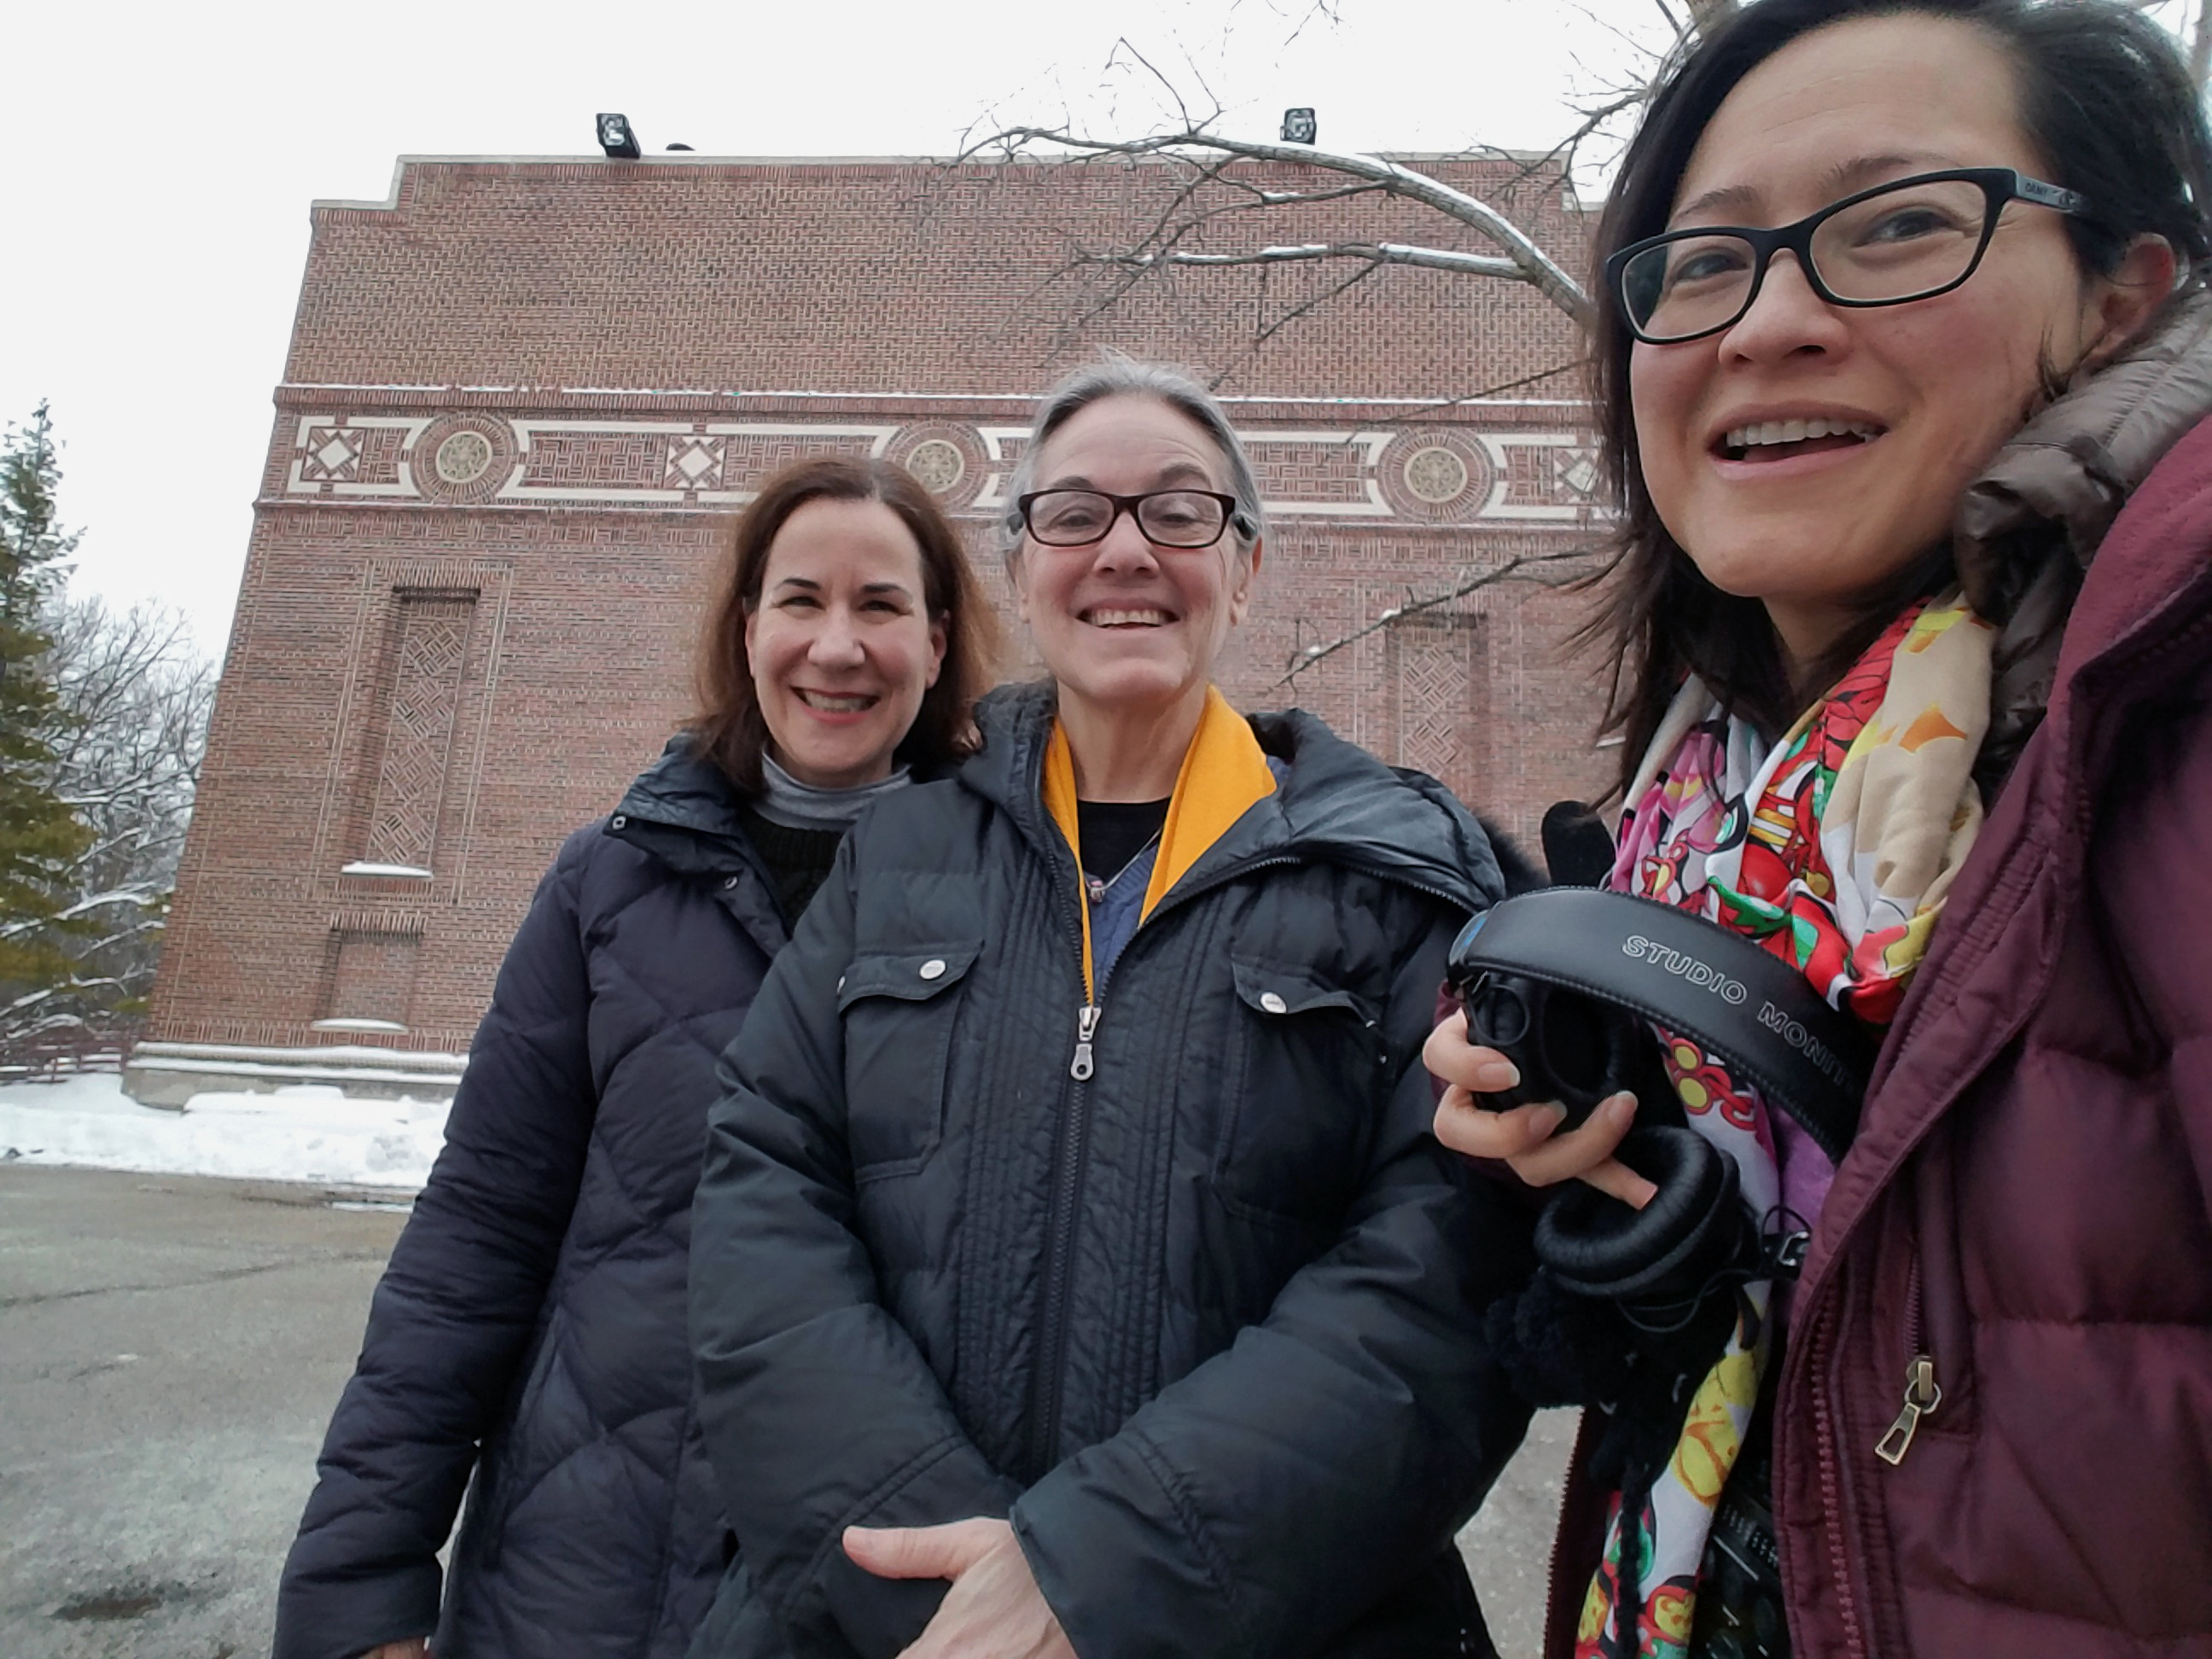 Sanitarium historian Frances Archer, left, questioner Laurie Nayder, center, and Curious City reporter Monica Eng, right, in front of the former sanitarium auditorium. (WBEZ/Monica Eng)